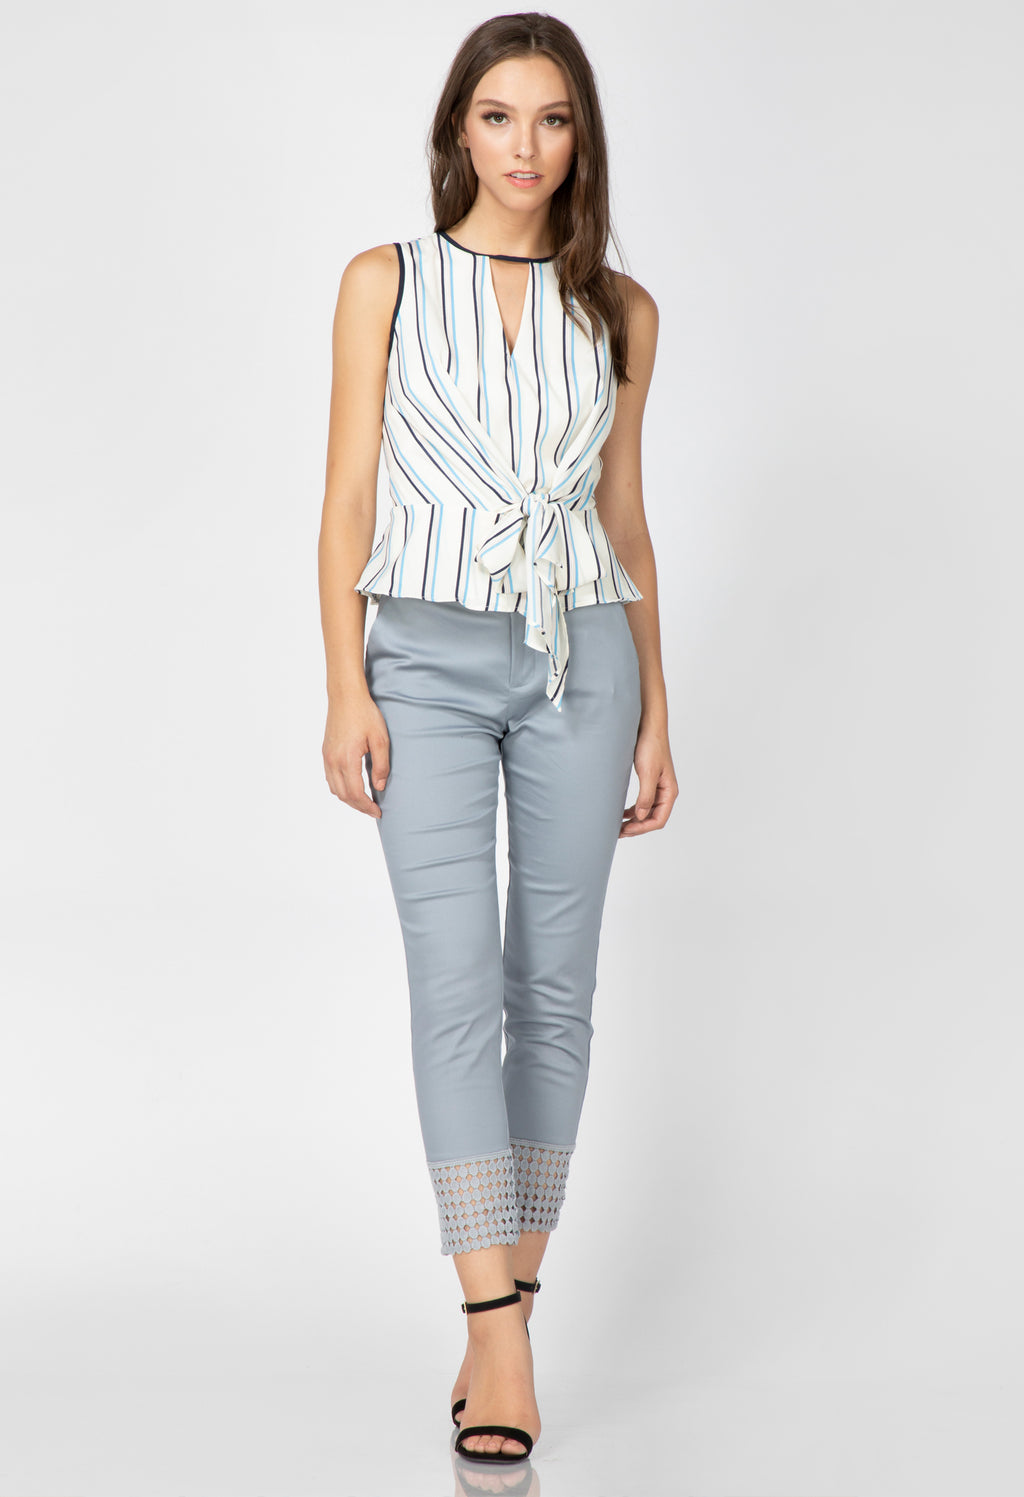 Layne Sleeveless Tie Blouse